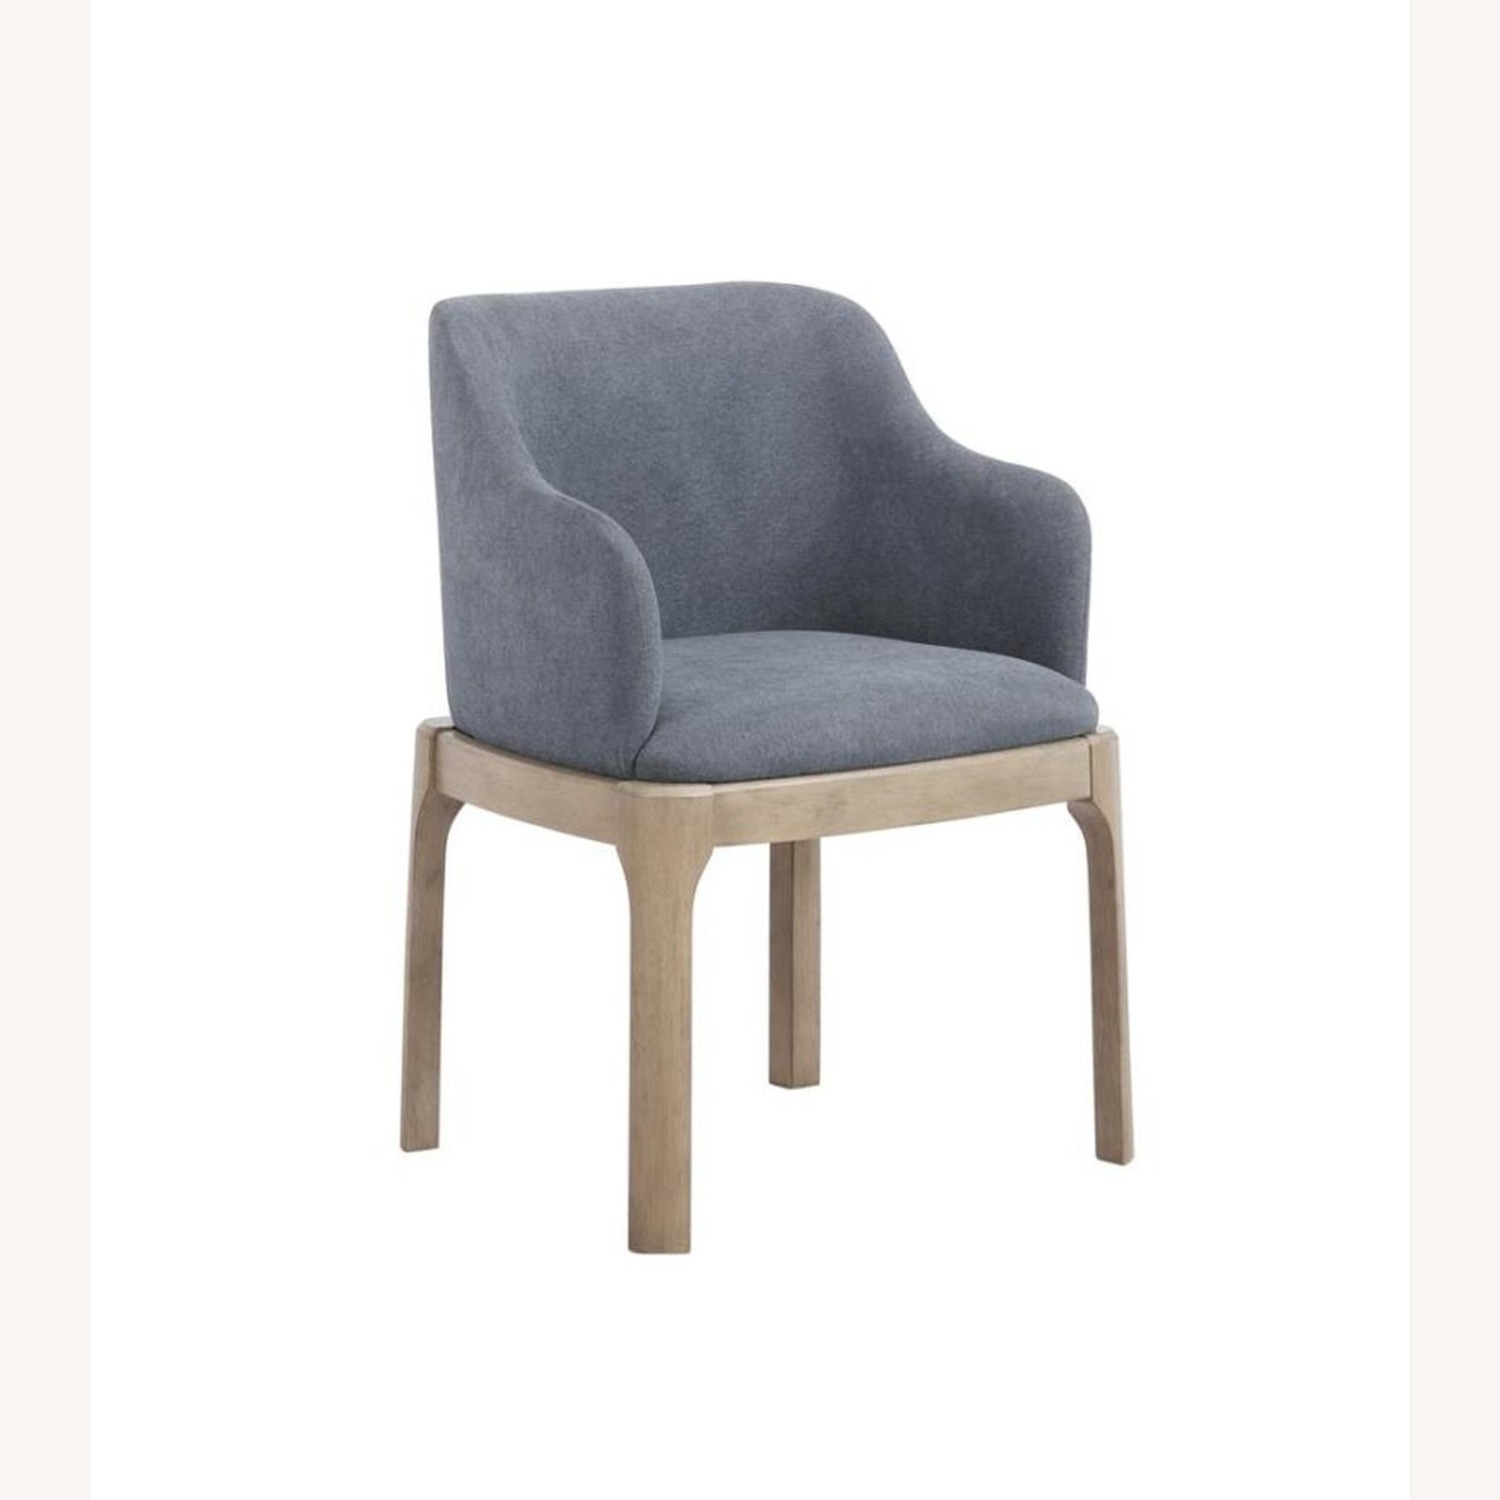 Modern Danish Style Arm Chair In Denim Blue - image-0